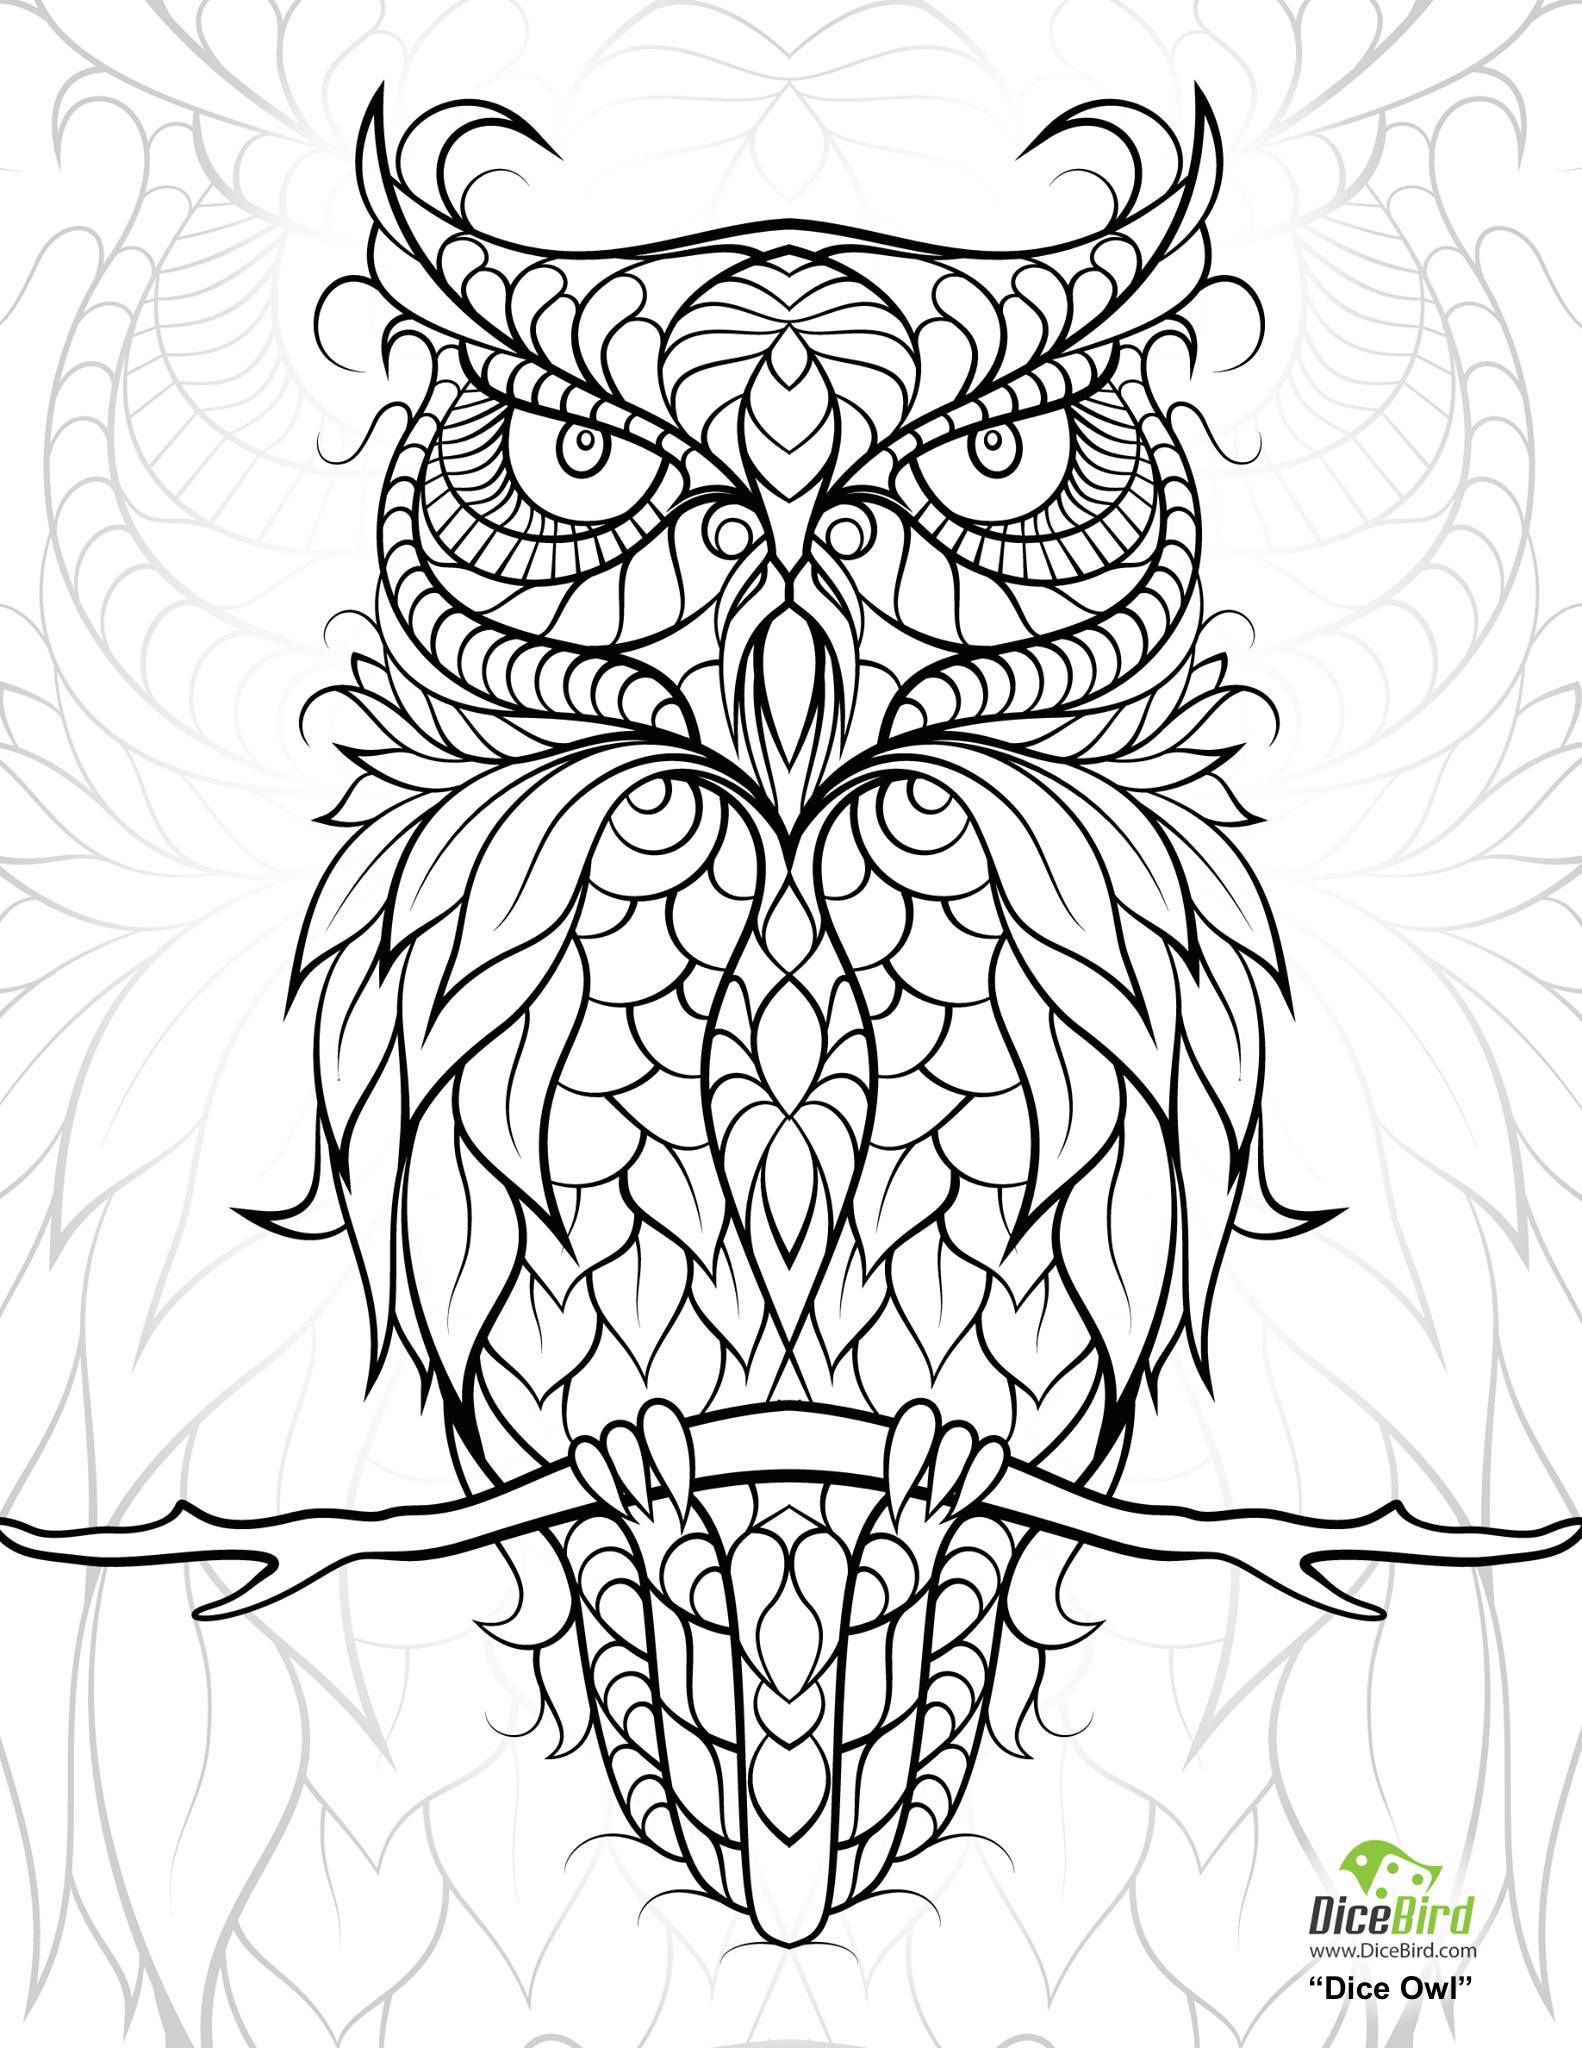 Diceowl Free Printable Adult Coloring Pages Owl Coloring Pages